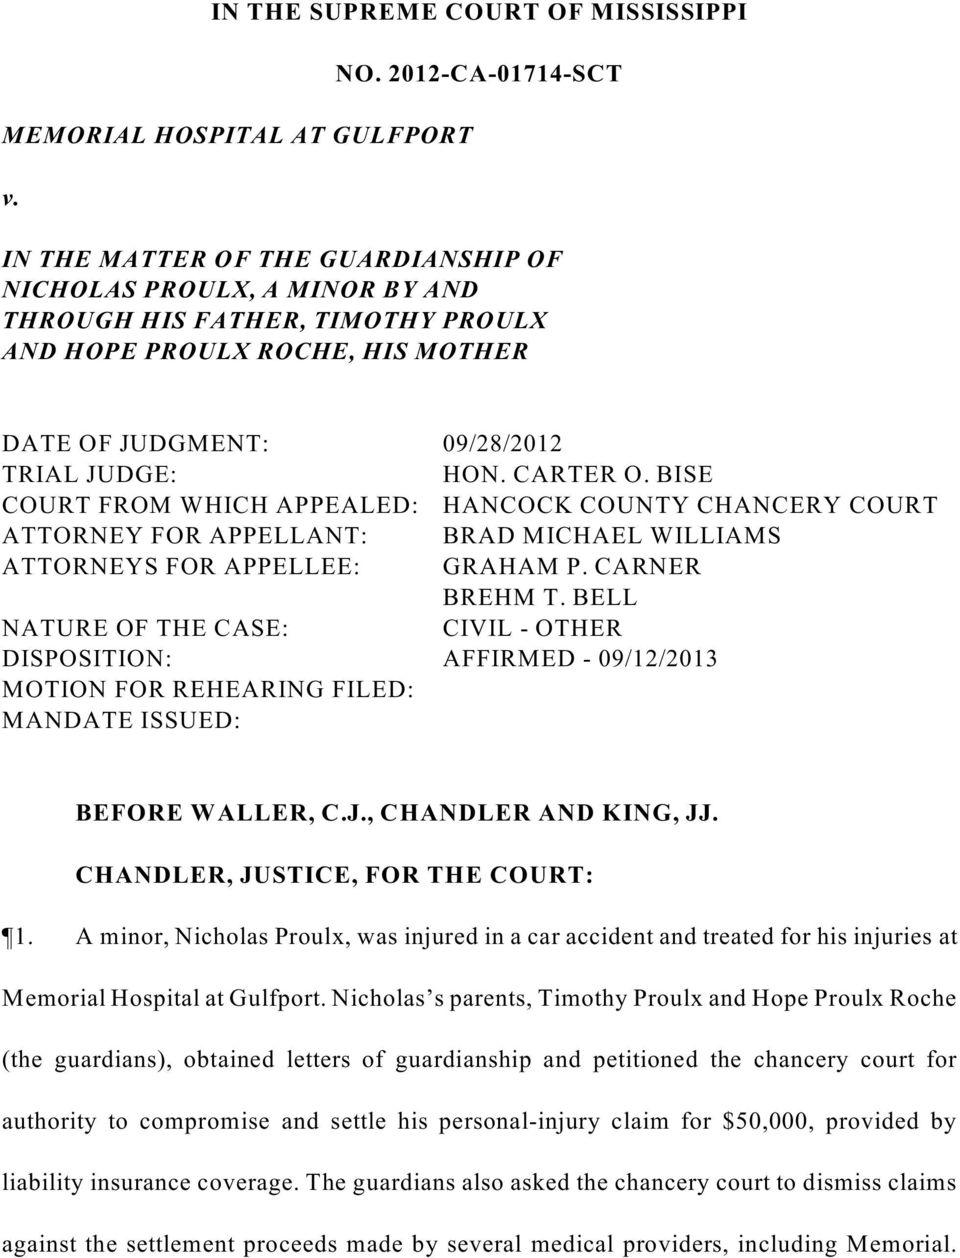 HON. CARTER O. BISE COURT FROM WHICH APPEALED: HANCOCK COUNTY CHANCERY COURT ATTORNEY FOR APPELLANT: BRAD MICHAEL WILLIAMS ATTORNEYS FOR APPELLEE: GRAHAM P. CARNER BREHM T.